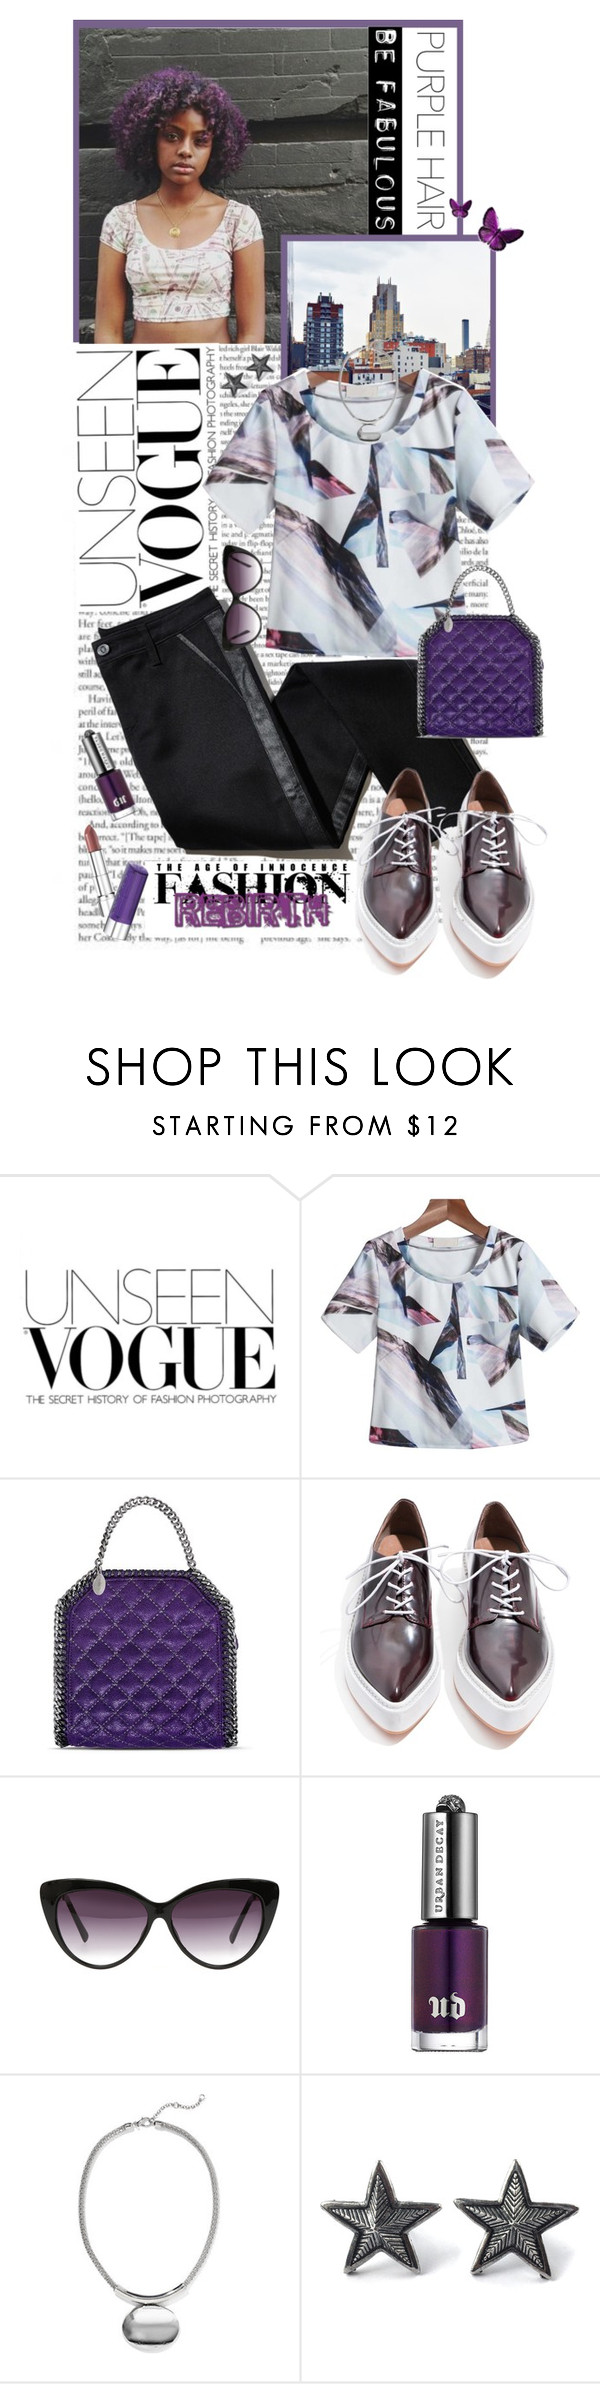 """""""Awesome Purple Hair"""" by shortyluv718 ❤ liked on Polyvore featuring TROA, STELLA McCARTNEY, Jeffrey Campbell, Eloquii, Urban Decay, ANNA, New York & Company and purplehair"""